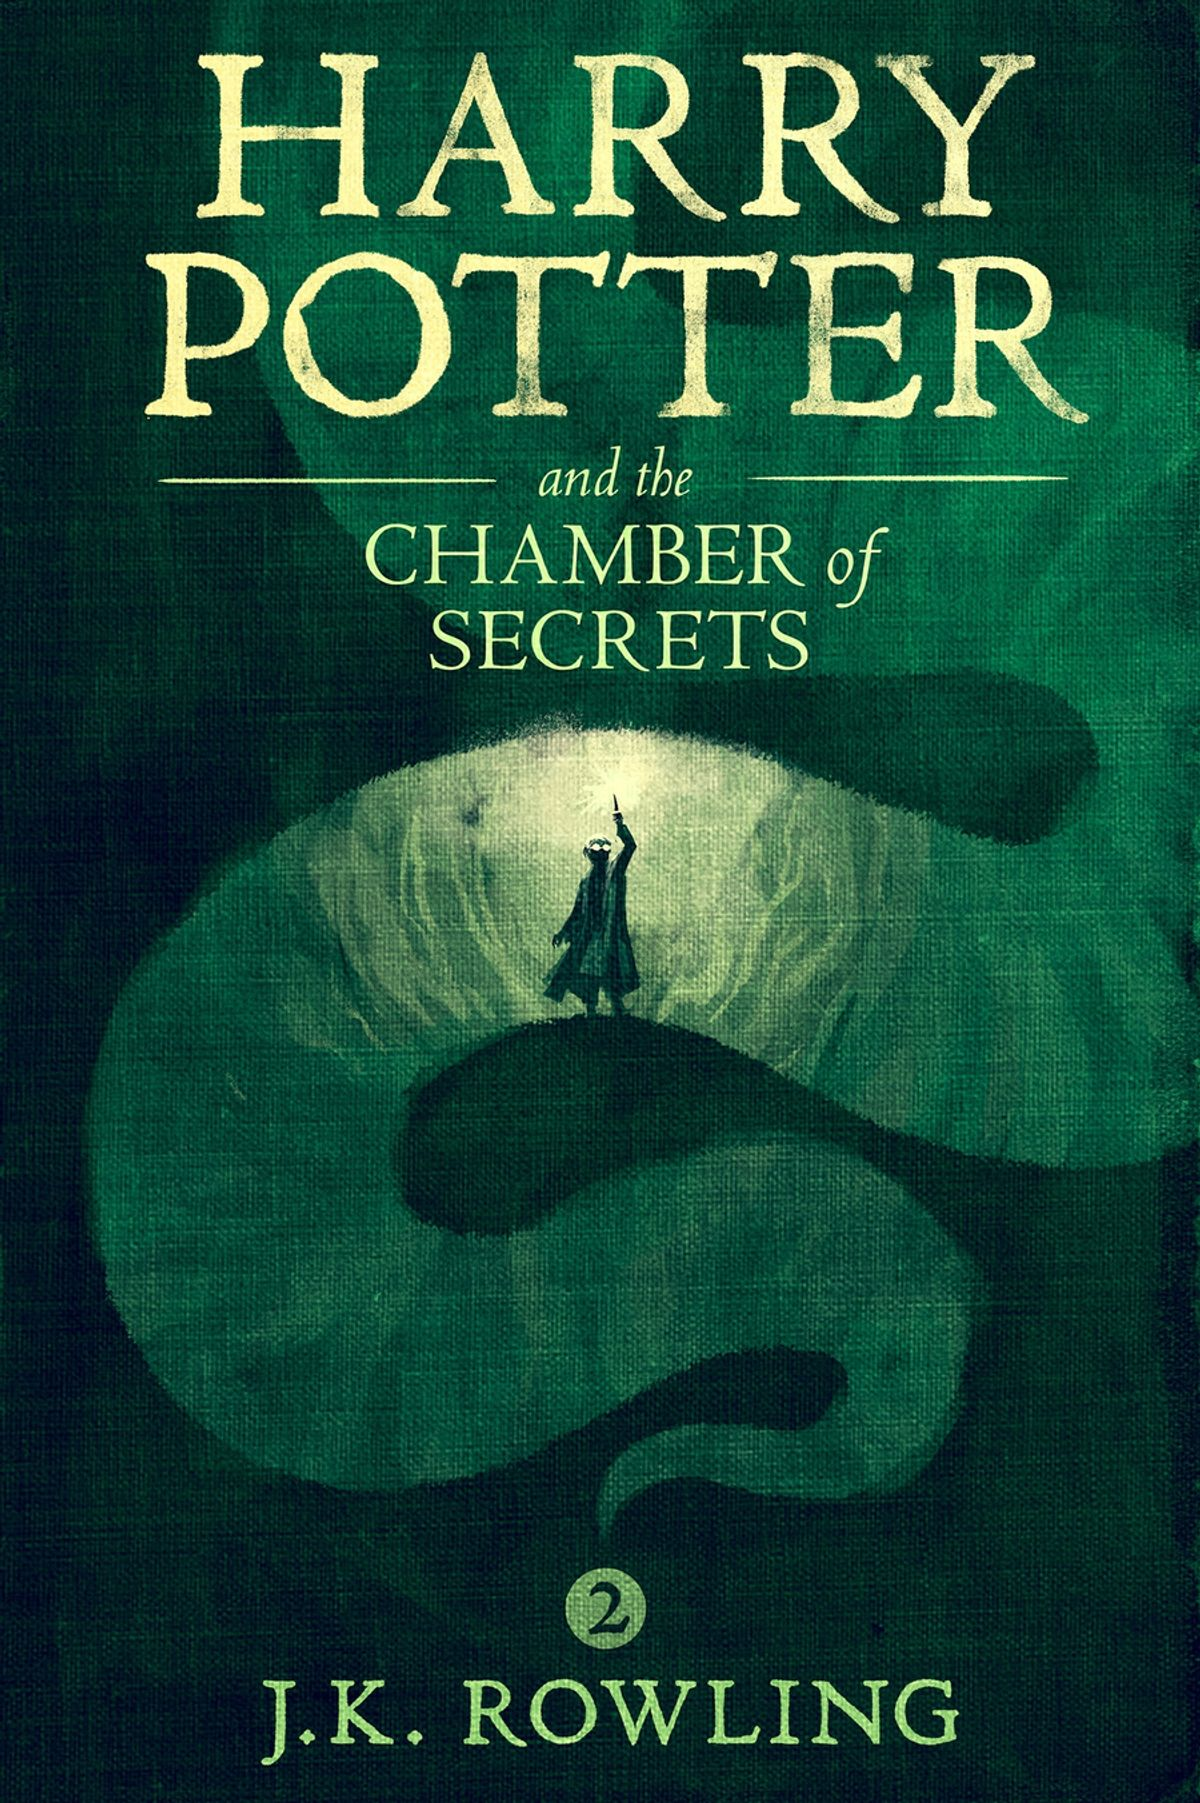 Harry Potter and the Chamber of Secrets by J.K Rowling PDF Download